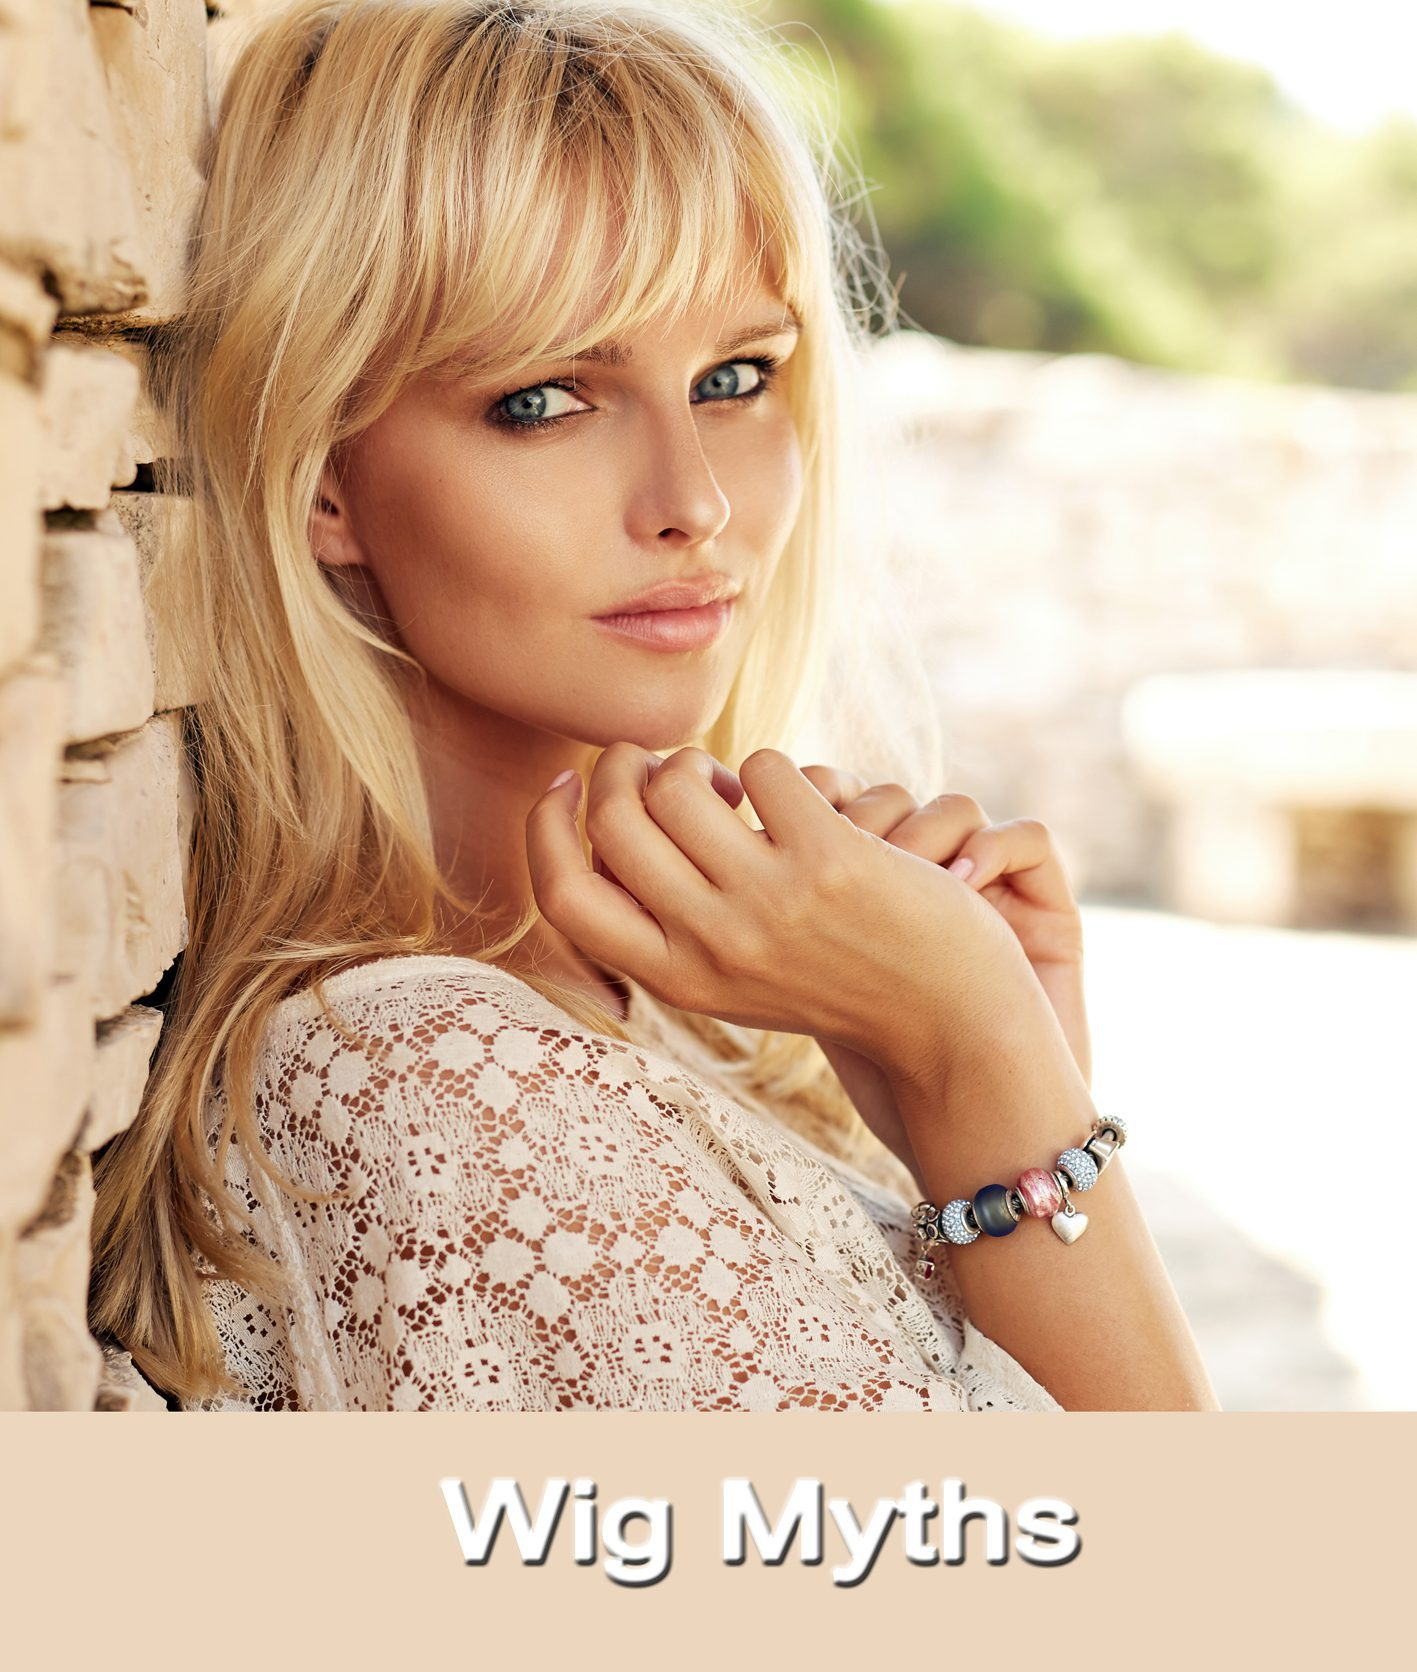 6 Myths about wearing wigs